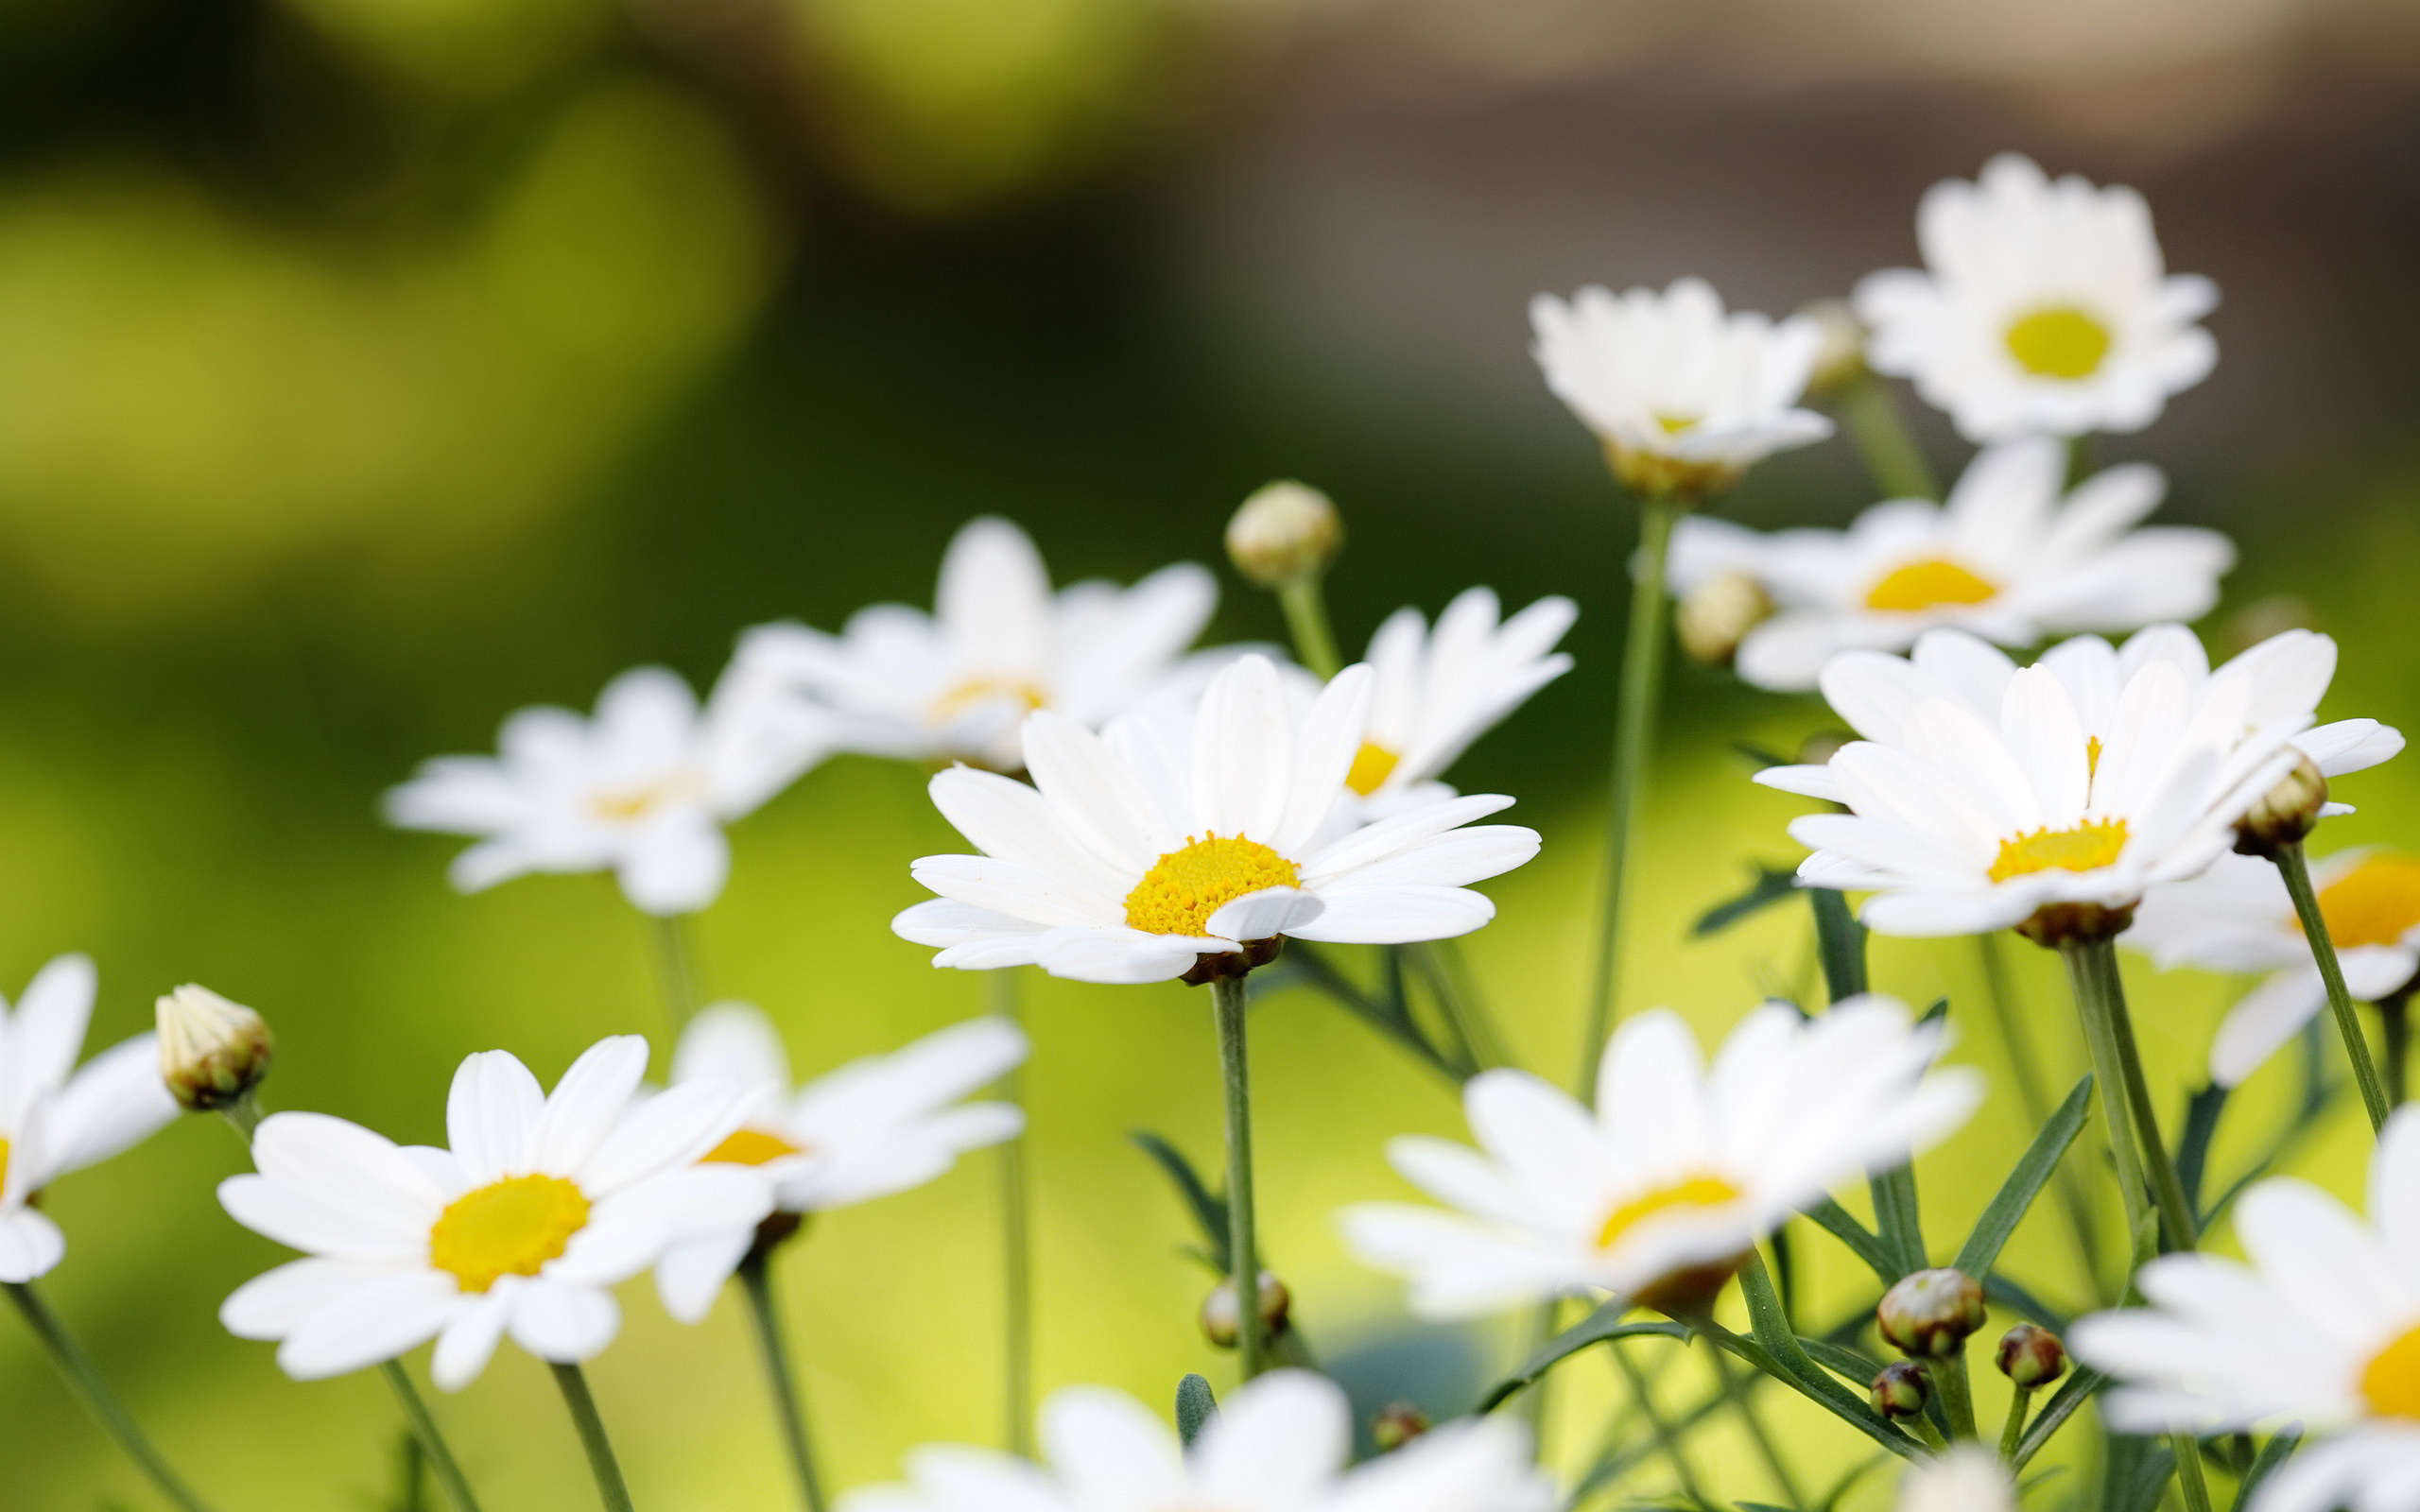 daisies flower background